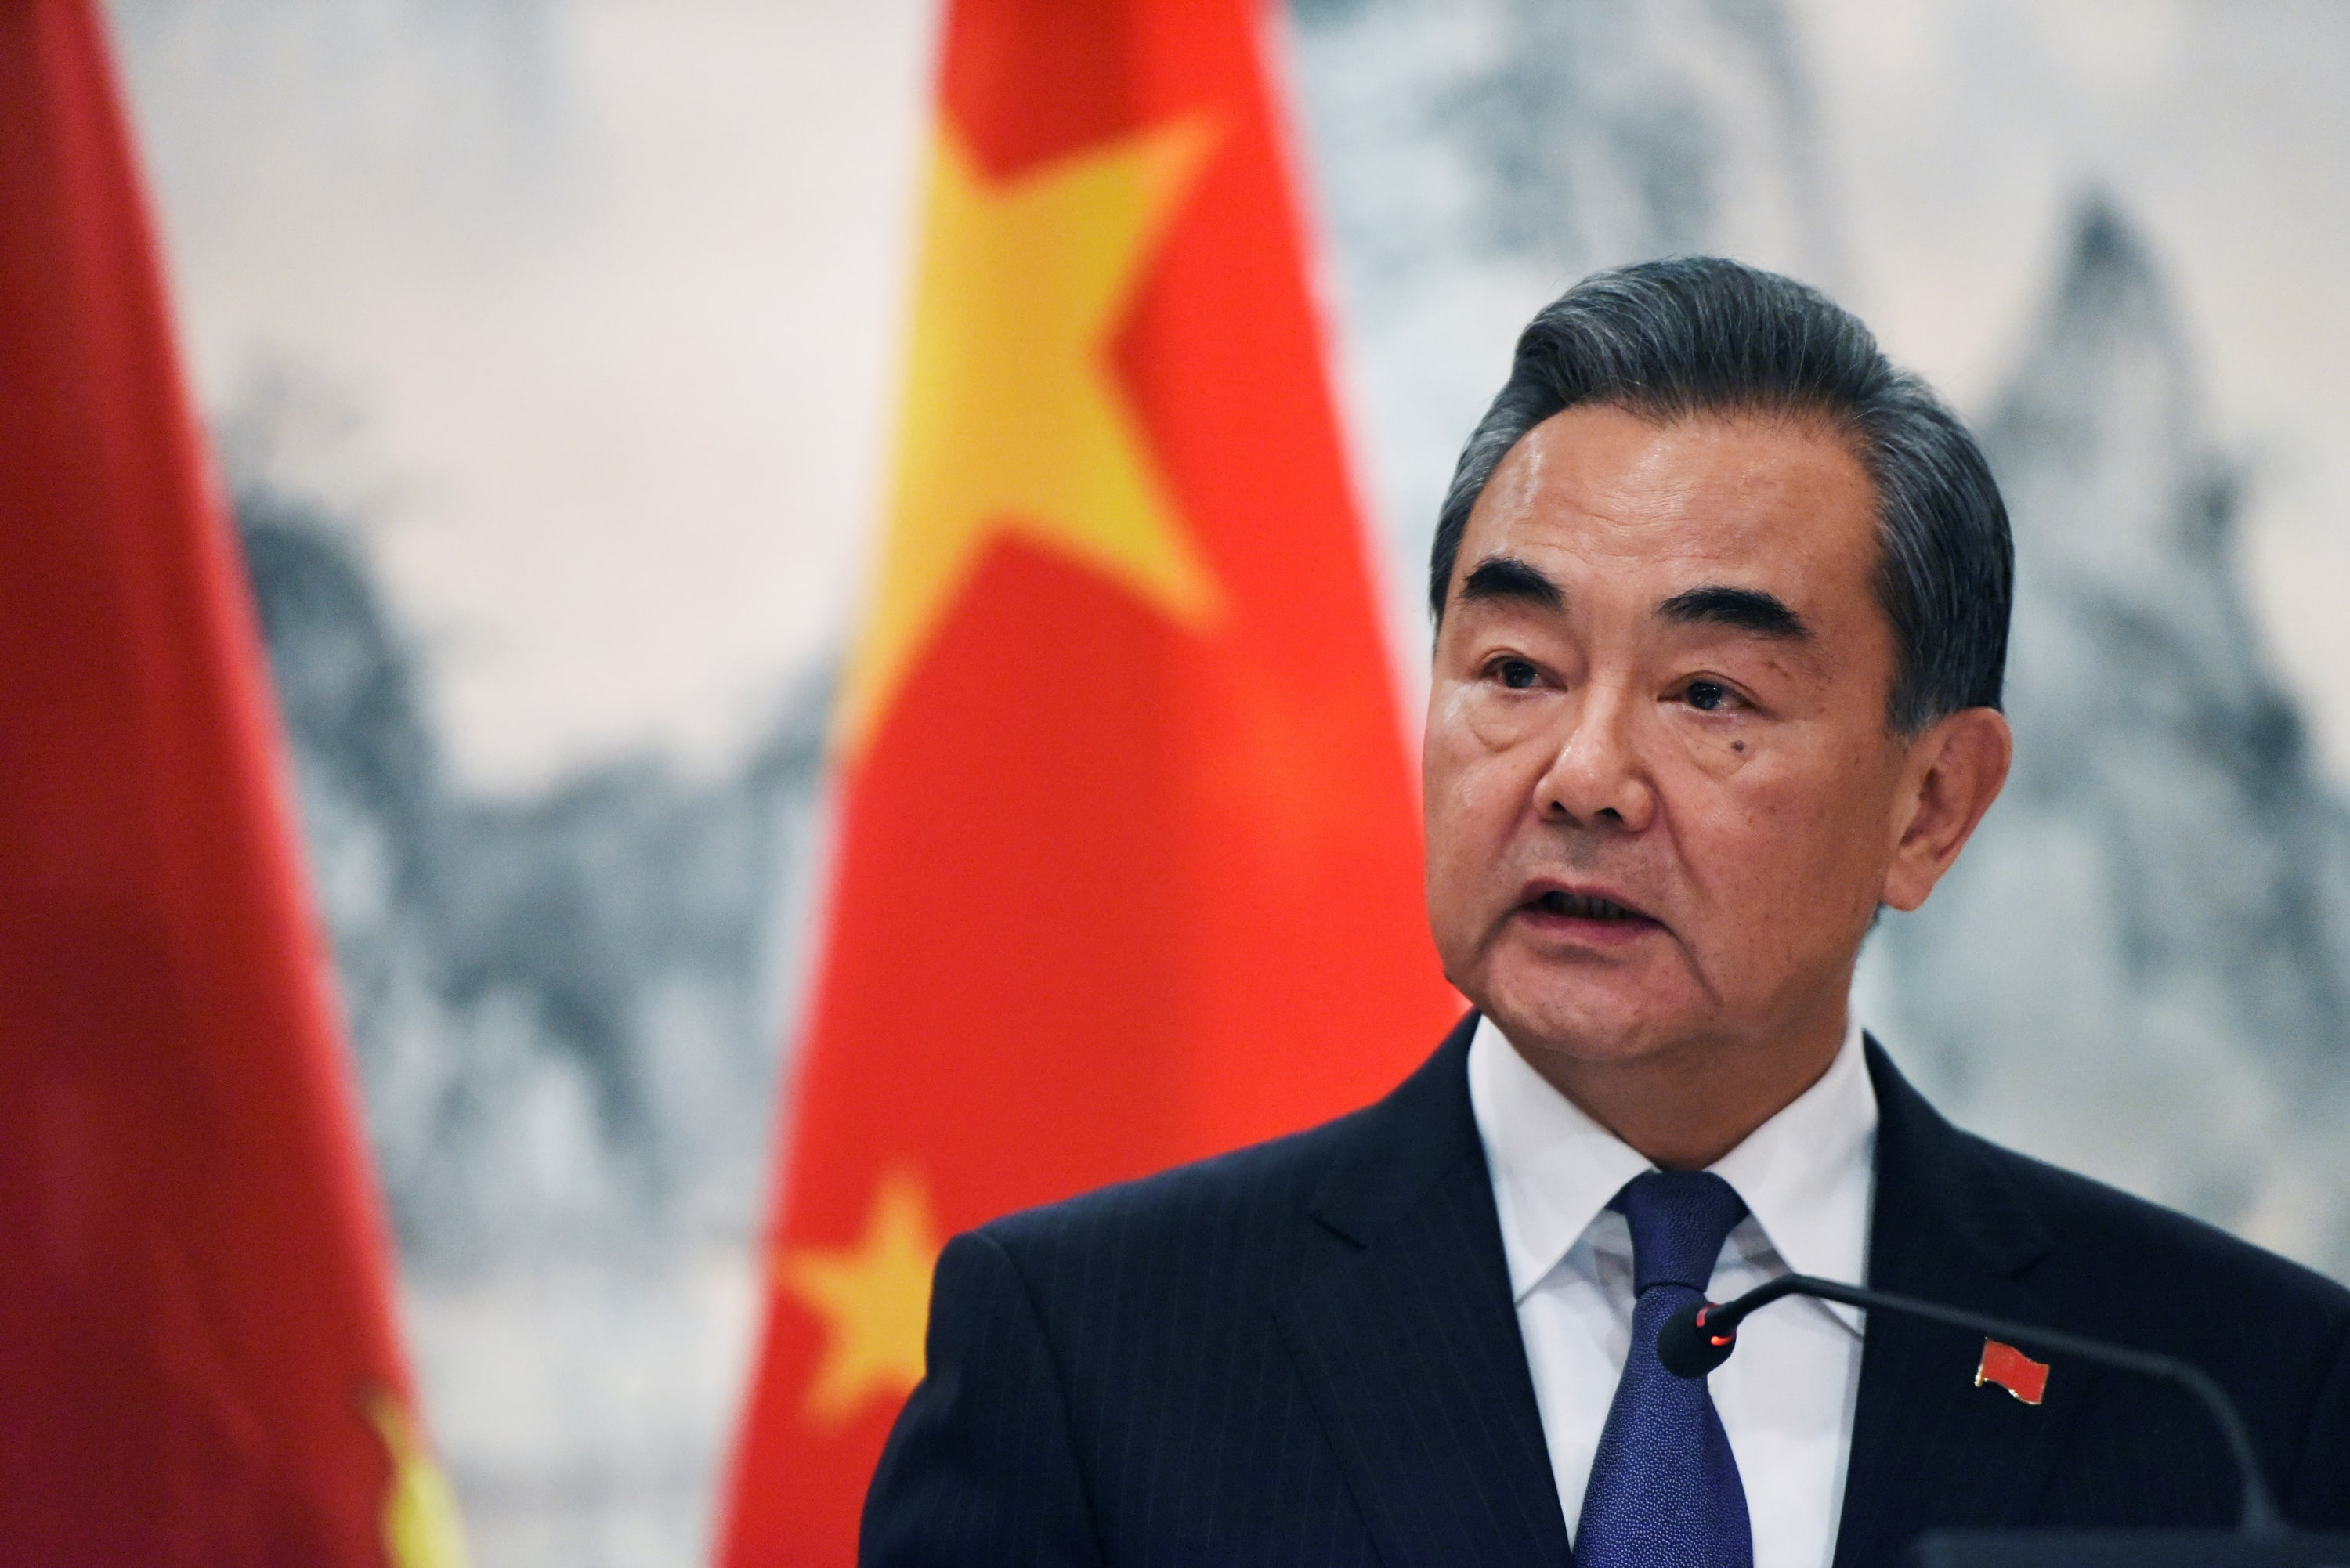 Top Chinese diplomats give conciliatory signals while demanding respect from the U.S.